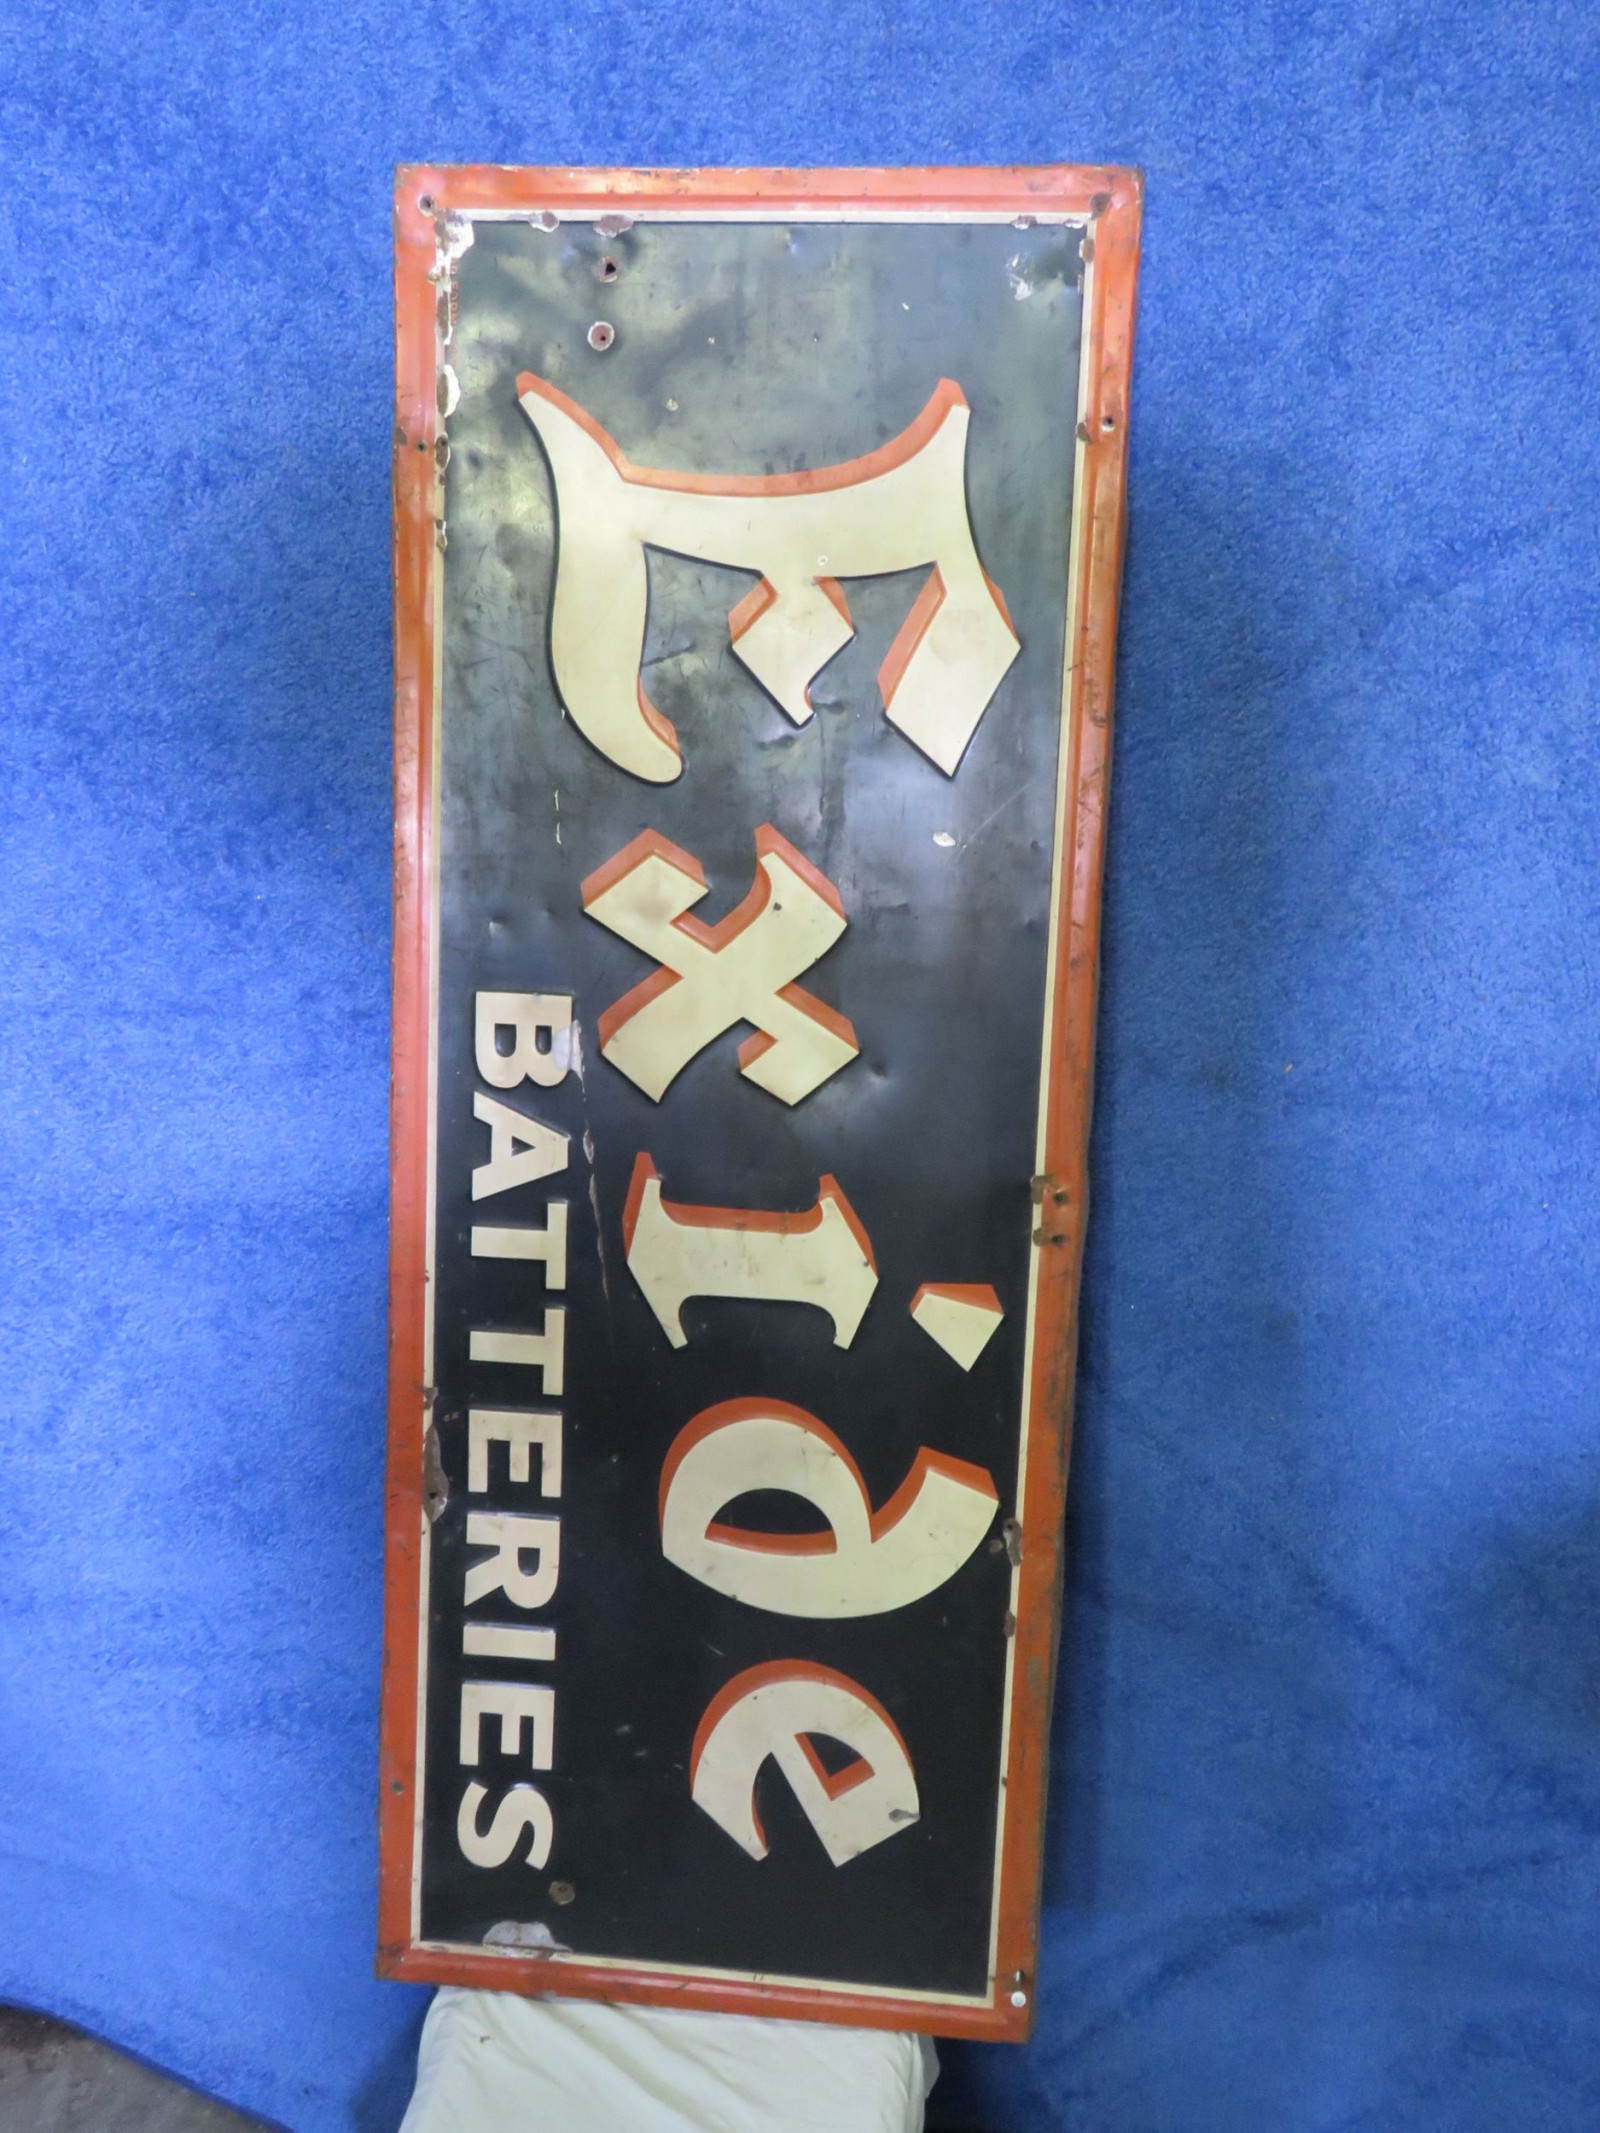 Excide BatteriesPainted Tin Sign - Image 1